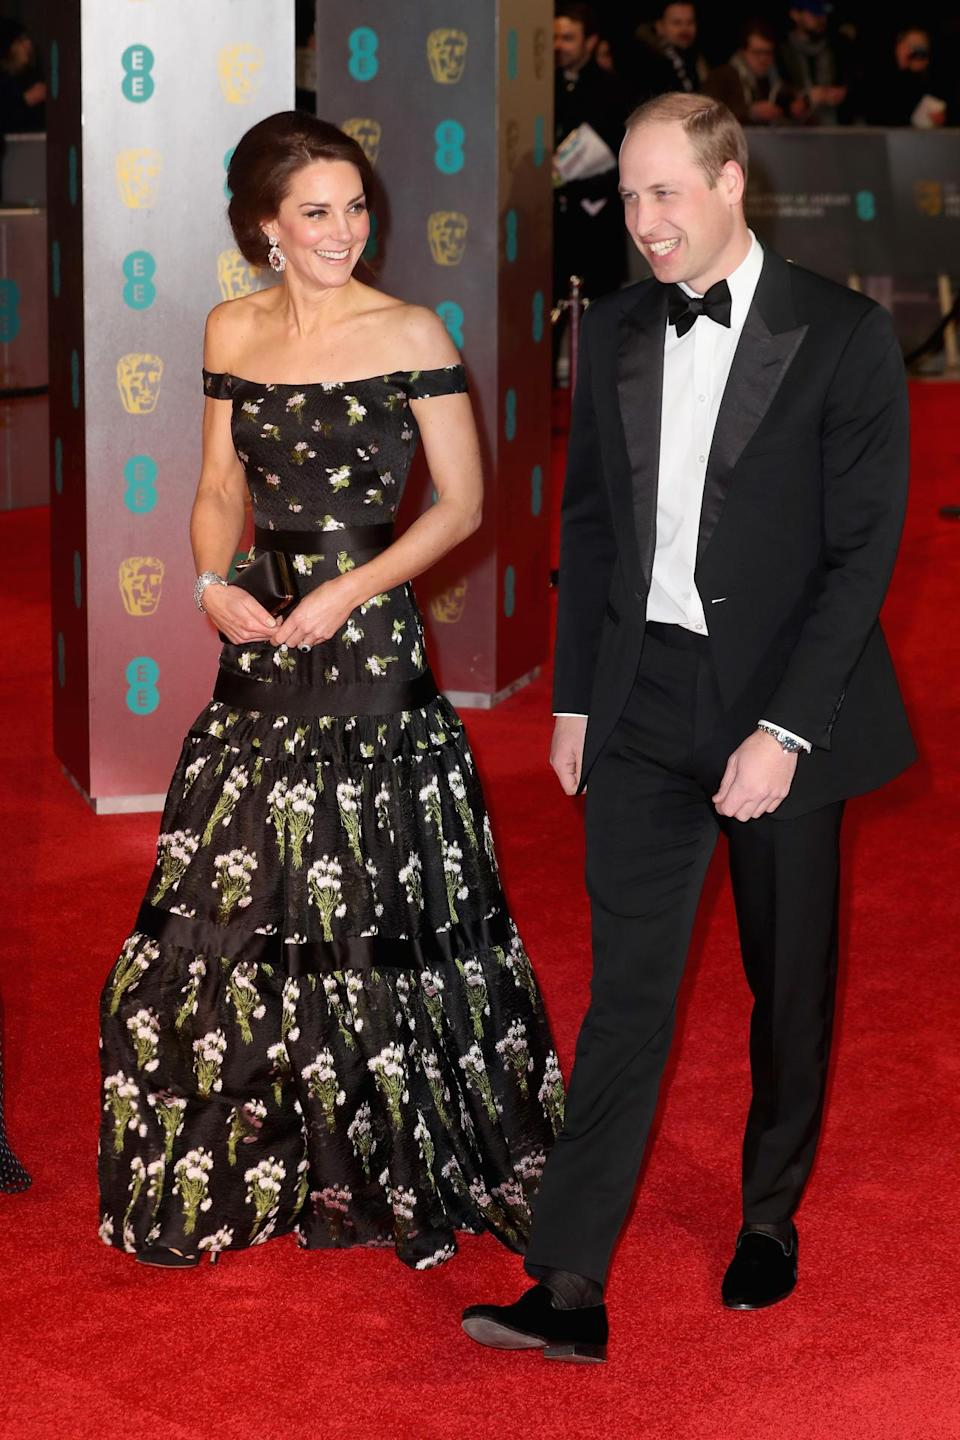 <p>For the 2017 BAFTAs, Kate chose a rather gothic gown by Alexander McQueen. The dress was printed with flowers and designed in an off-the-shoulder style. The Duchess paired the dark ensemble with black pumps and a matching satin McQueen clutch. </p><p><i>[Photo: Getty]</i></p>